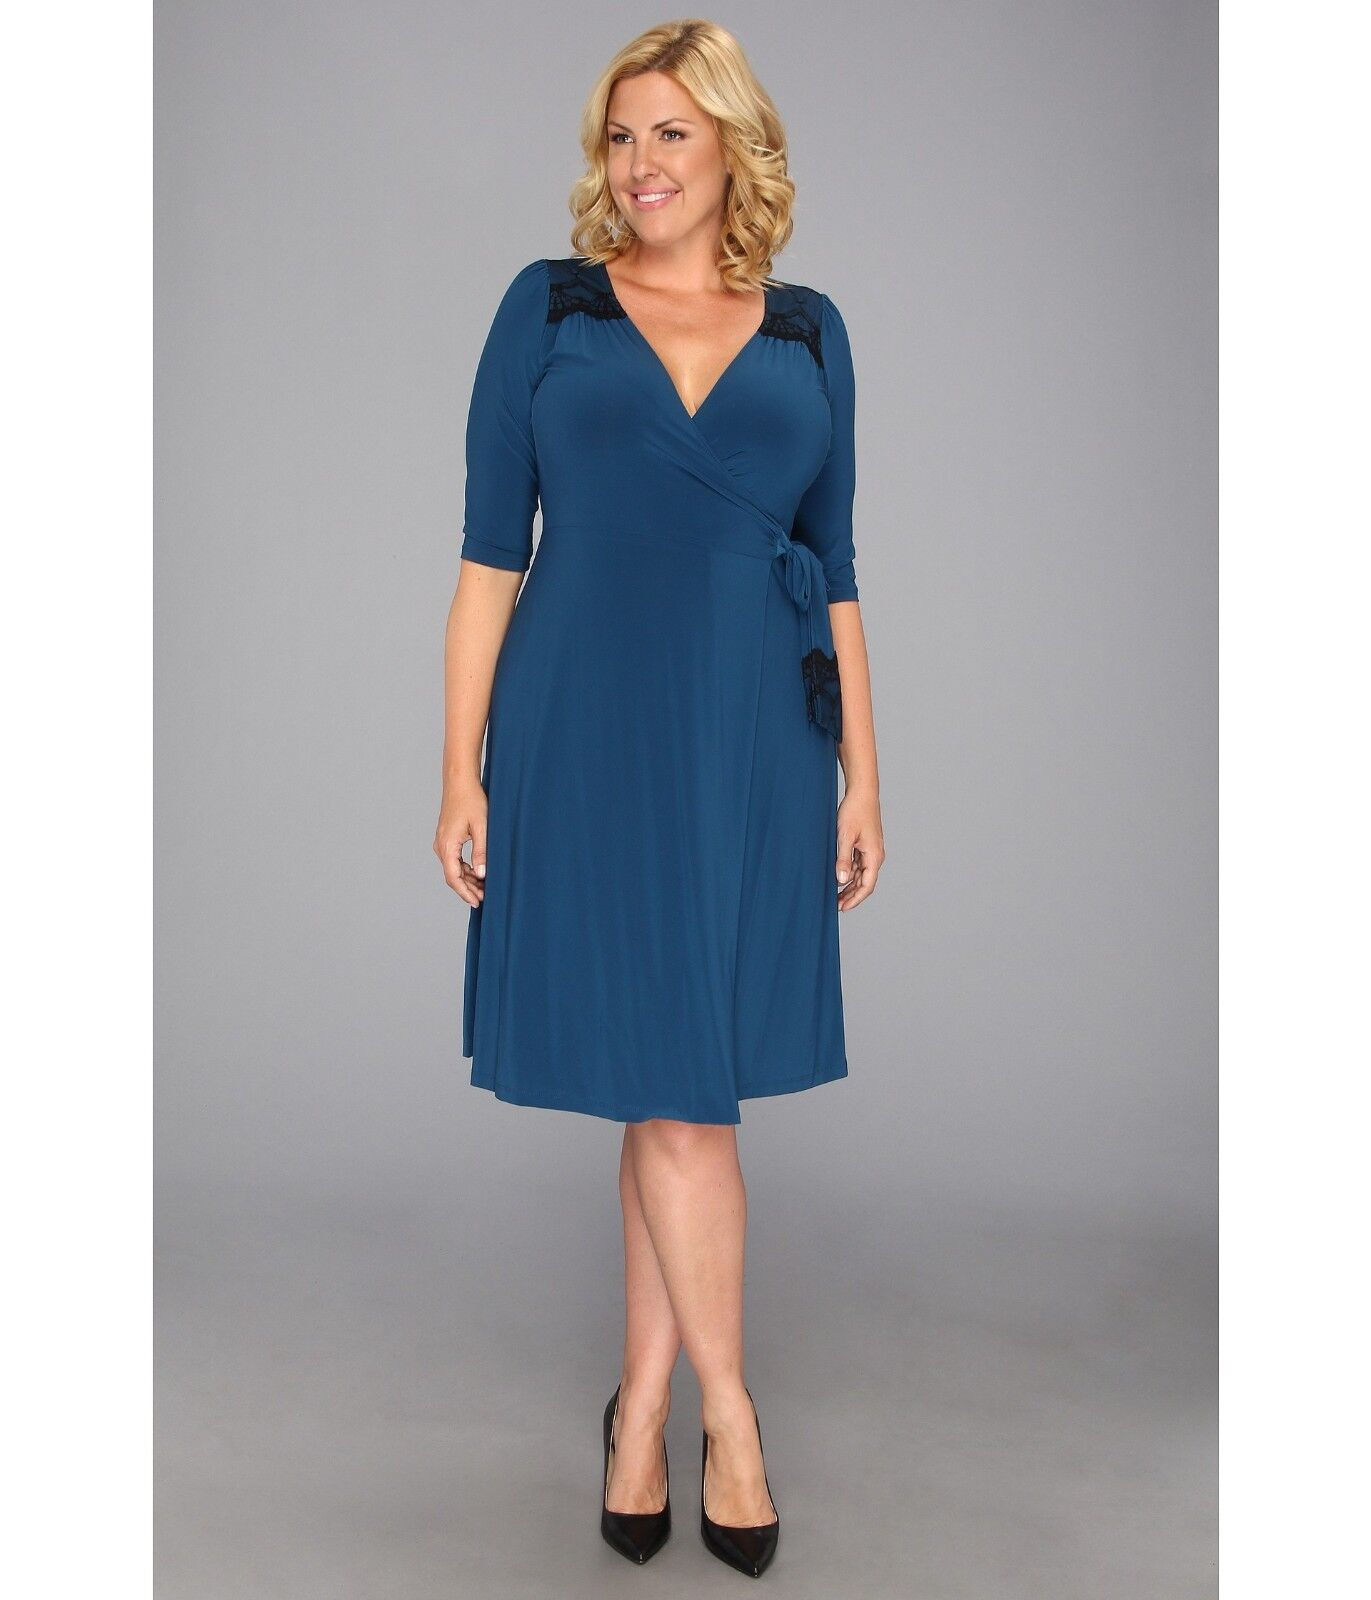 NWT Beautiful Plus Size Julieanne Wrap Dress by Kiyonna, 1X